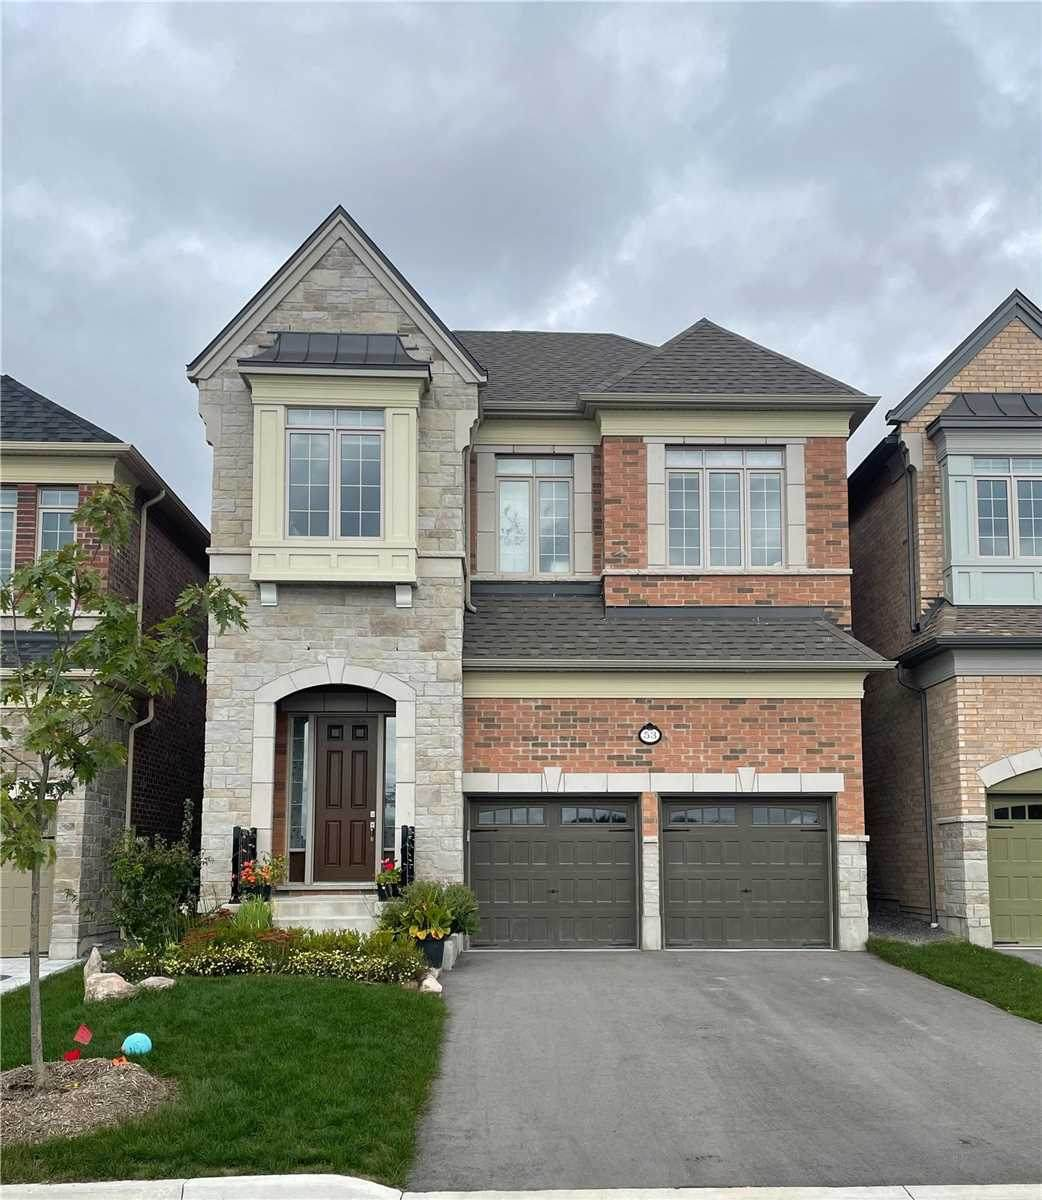 53 St Ives Cres - Photo 1